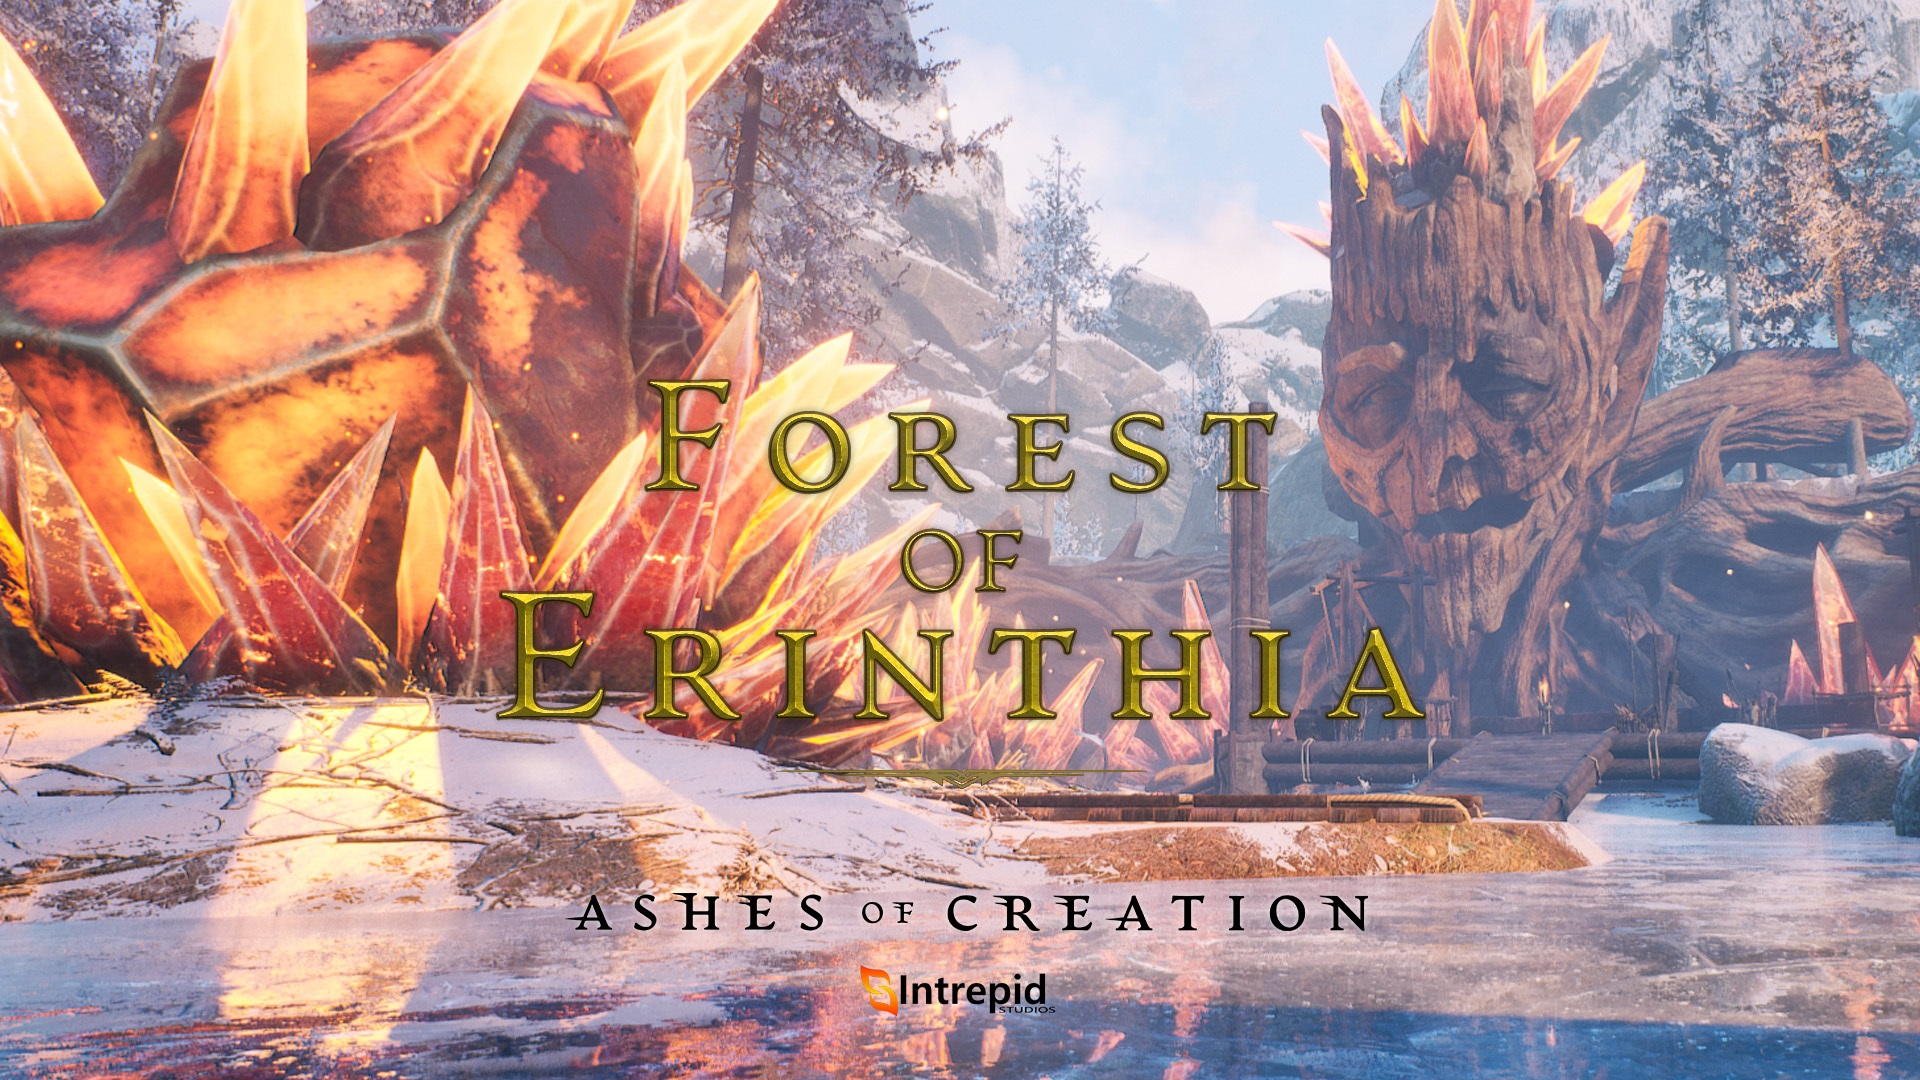 Forest of Erinthia Game Update